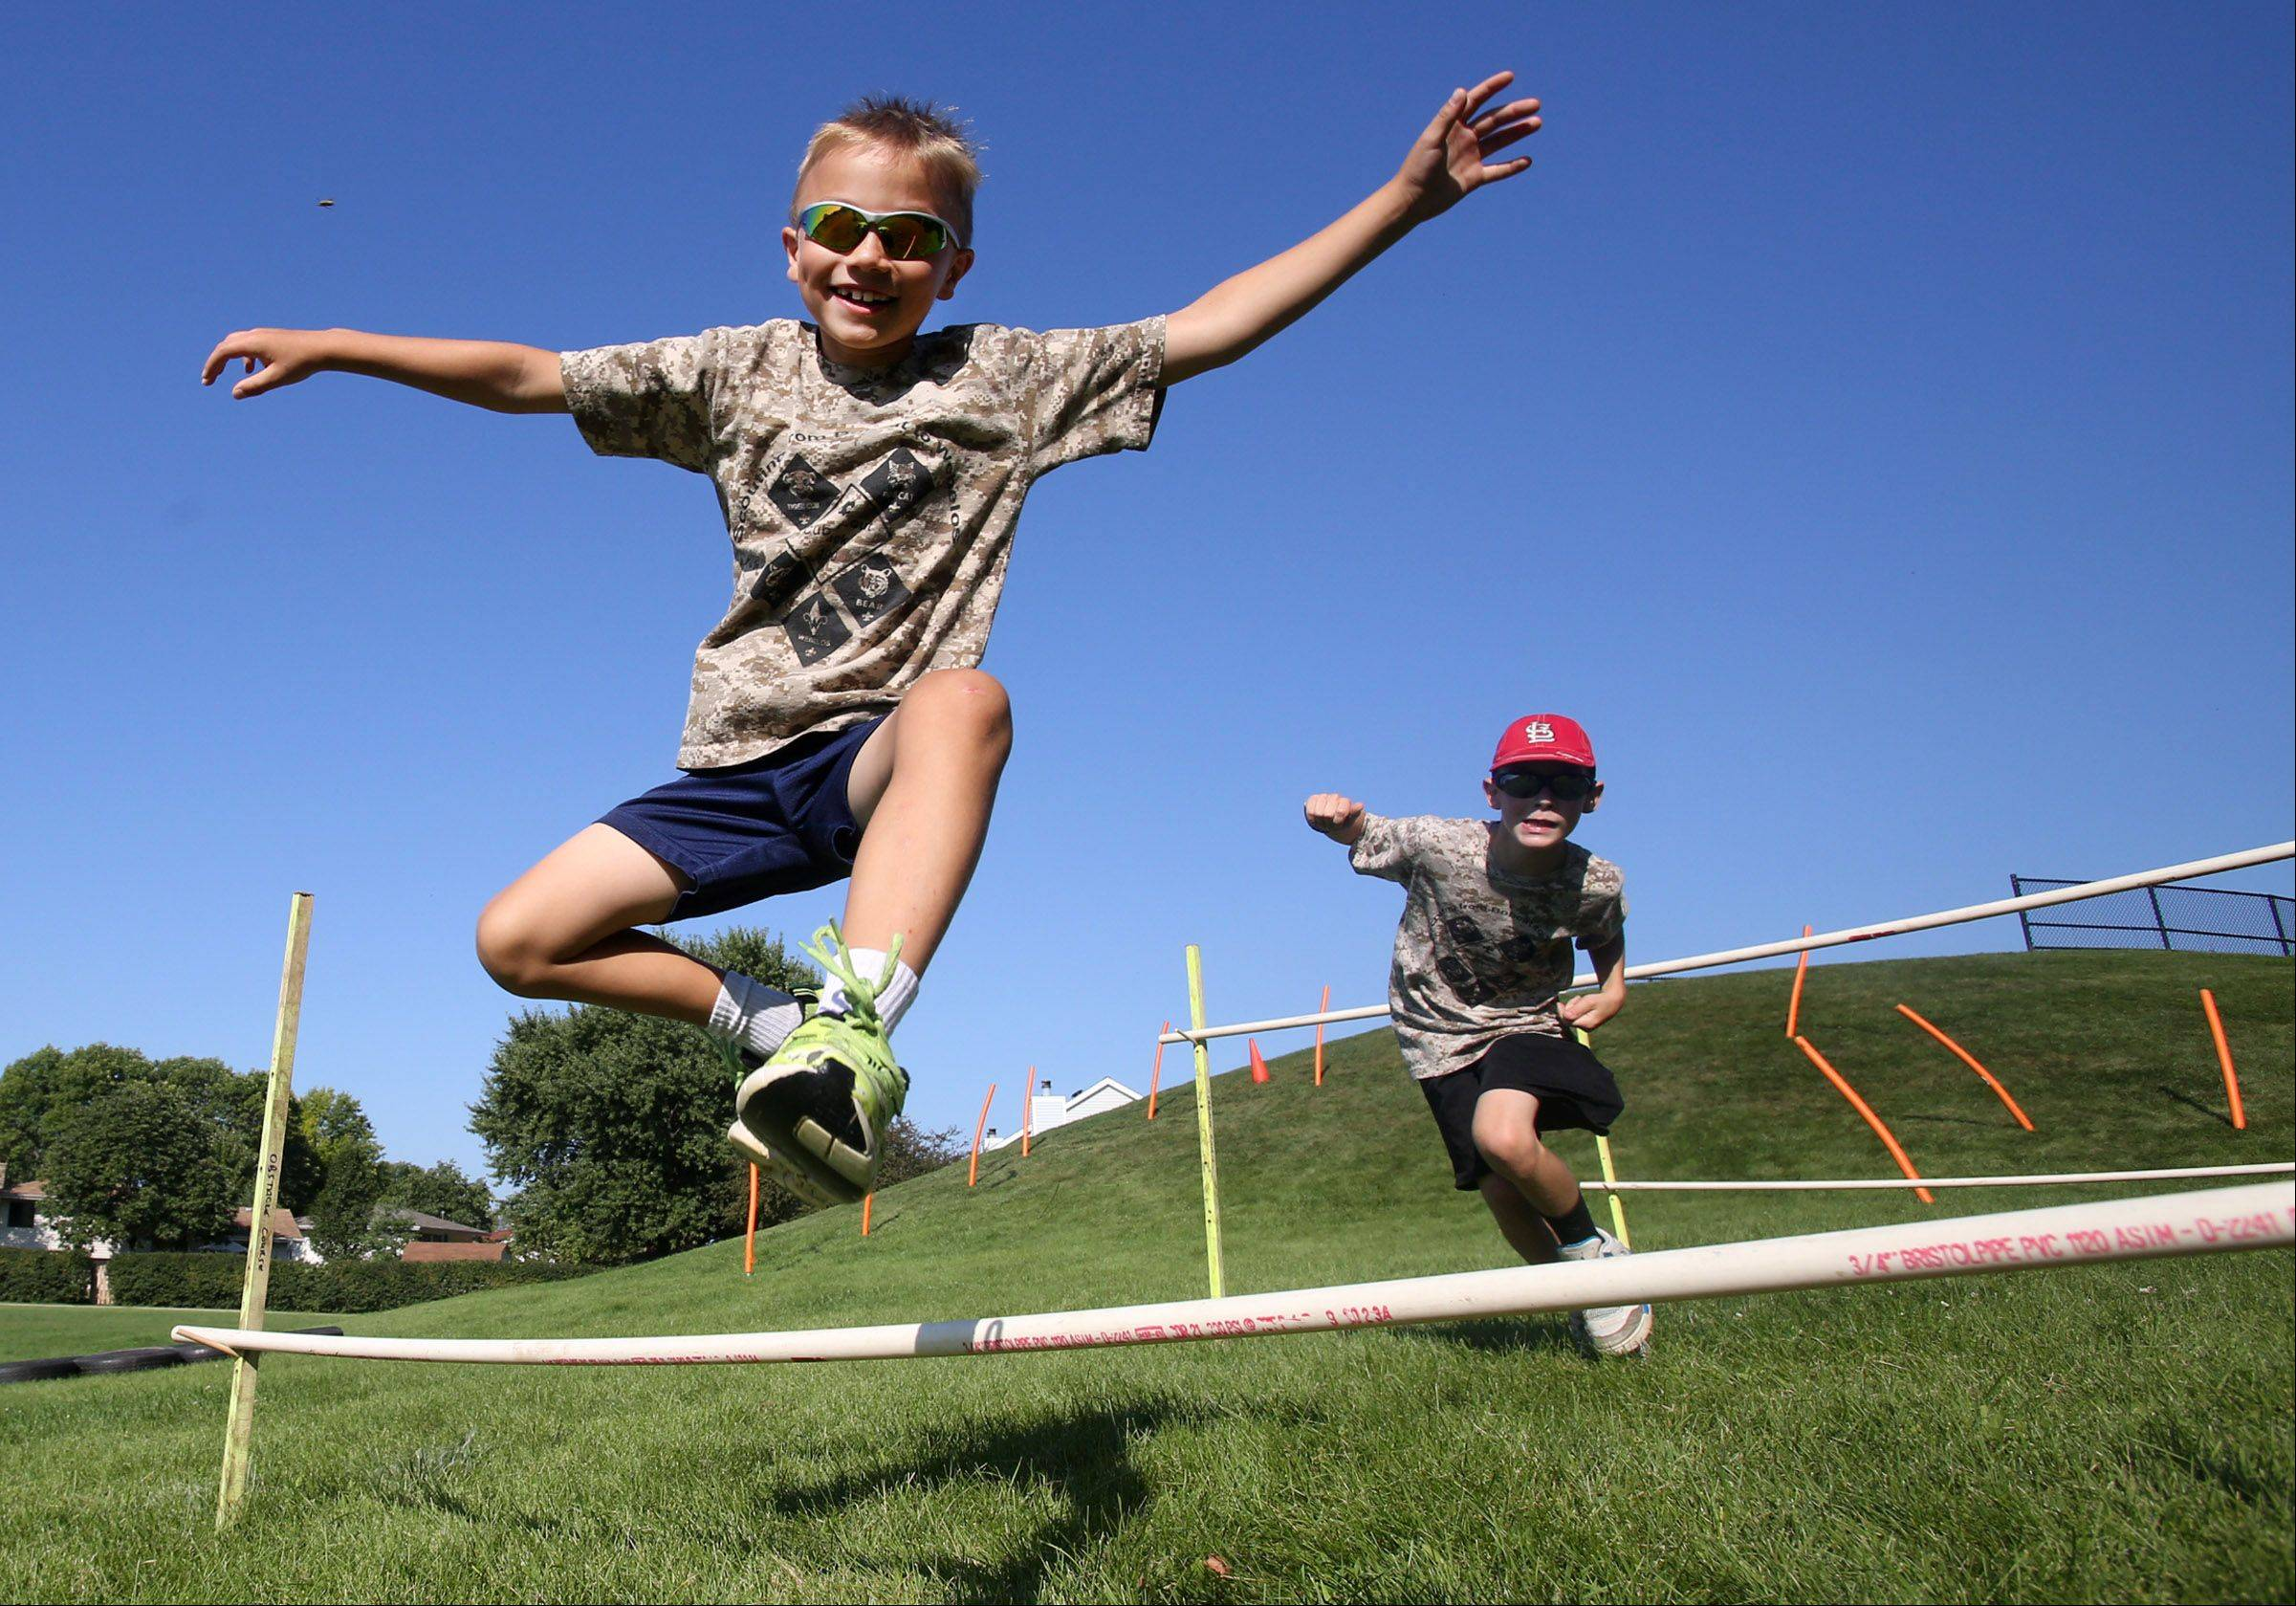 John French, 8, followed by Patrick Ortwerth, 10, both of Schaumburg, with Cub Scout Pack 100, leap over a pole on an obstacle course during the 2013 Cub Scout Pathfinder Summer Games held by All Boy Scouts and Pathfinder District of Northwest Suburban Council at Meineke Park in Schaumburg on Saturday.